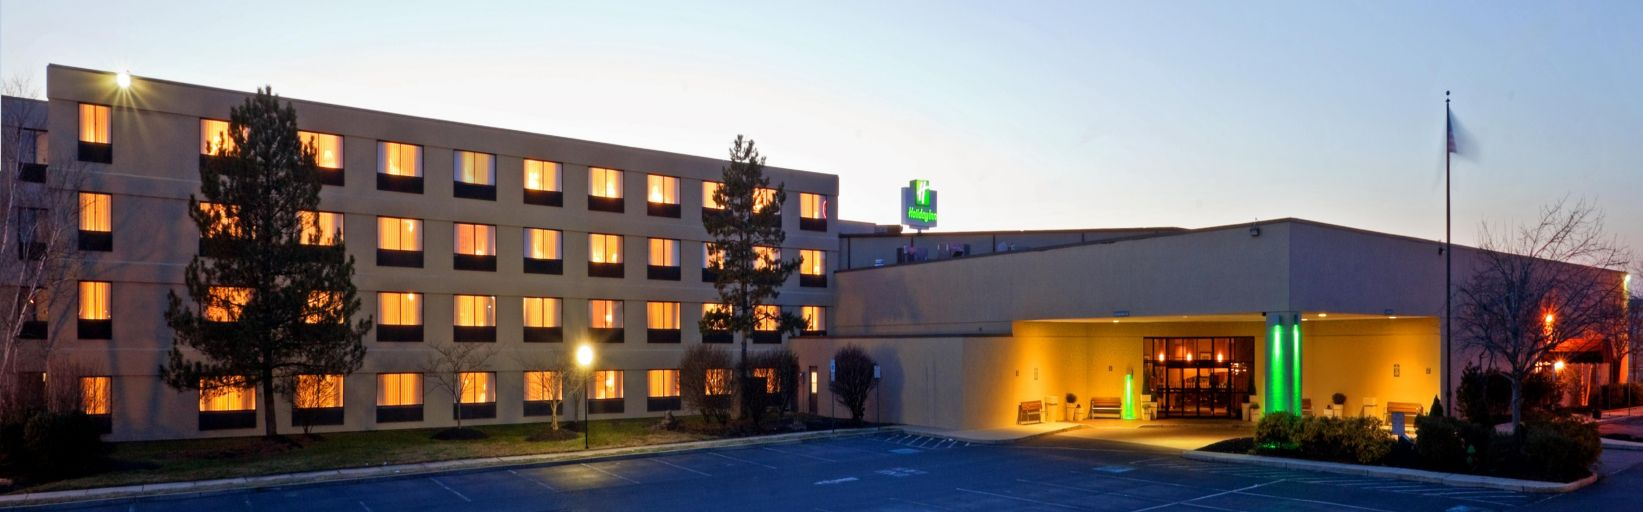 Holiday Inn Philadelphia South Swedesboro